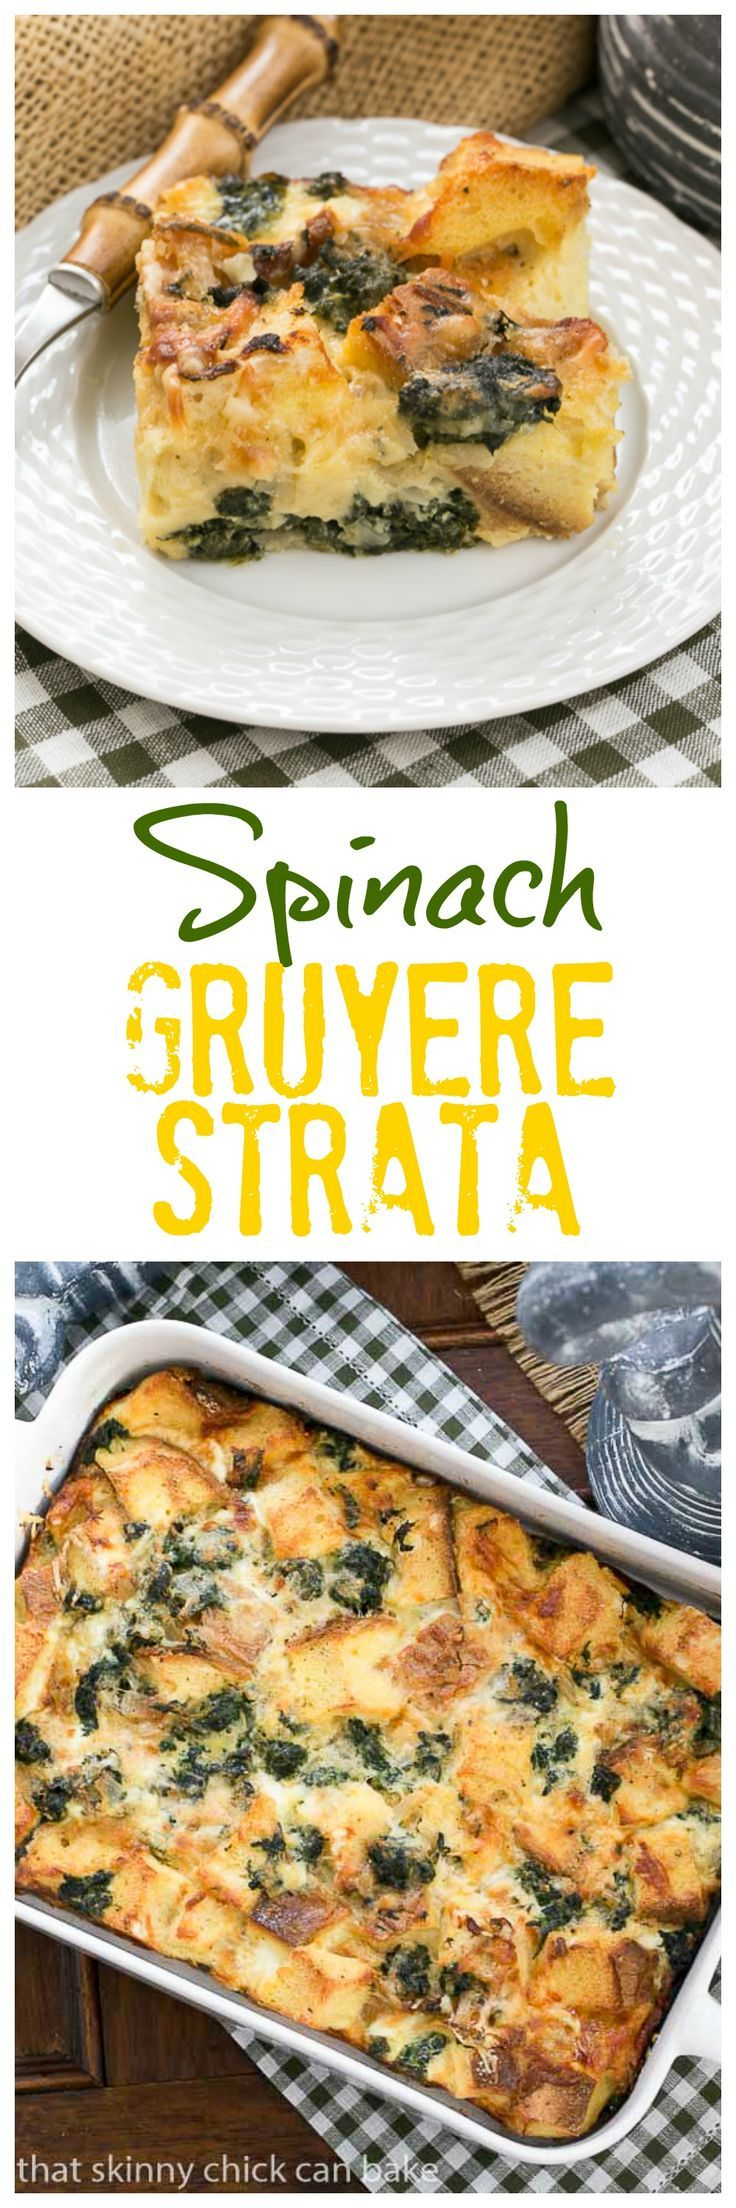 Gruyere Spinach Strata | A terrific cheesy breakfast casserole made with bread, Swiss Gruyere and spinach! /lizzydo/